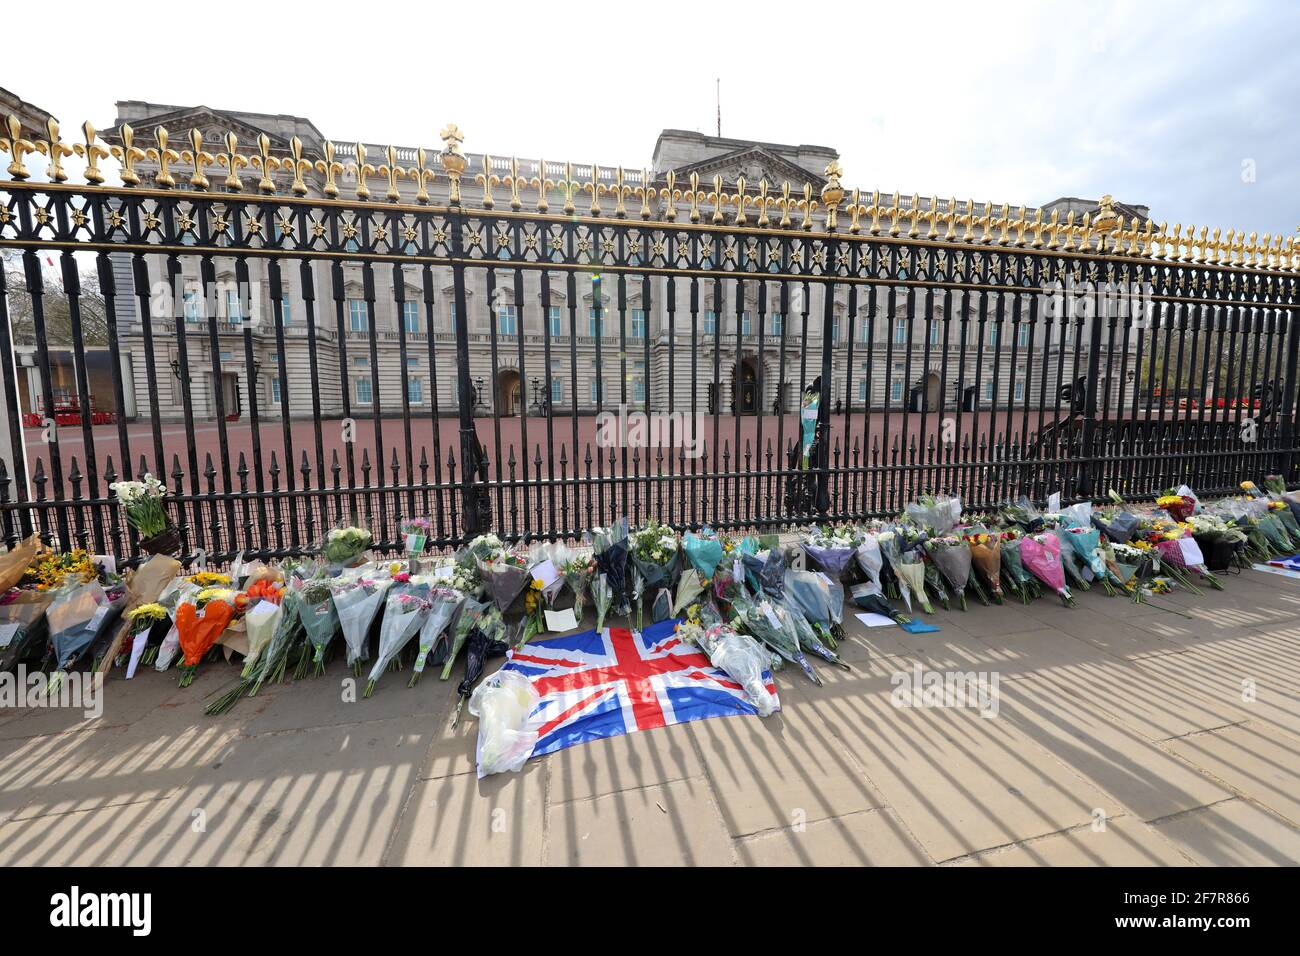 London, UK. 9th Apr, 2021. Floral tributes laid by people at Buckingham Palace after the announcement of the death of Prince Philip Credit: Paul Brown/Alamy Live News Stock Photo